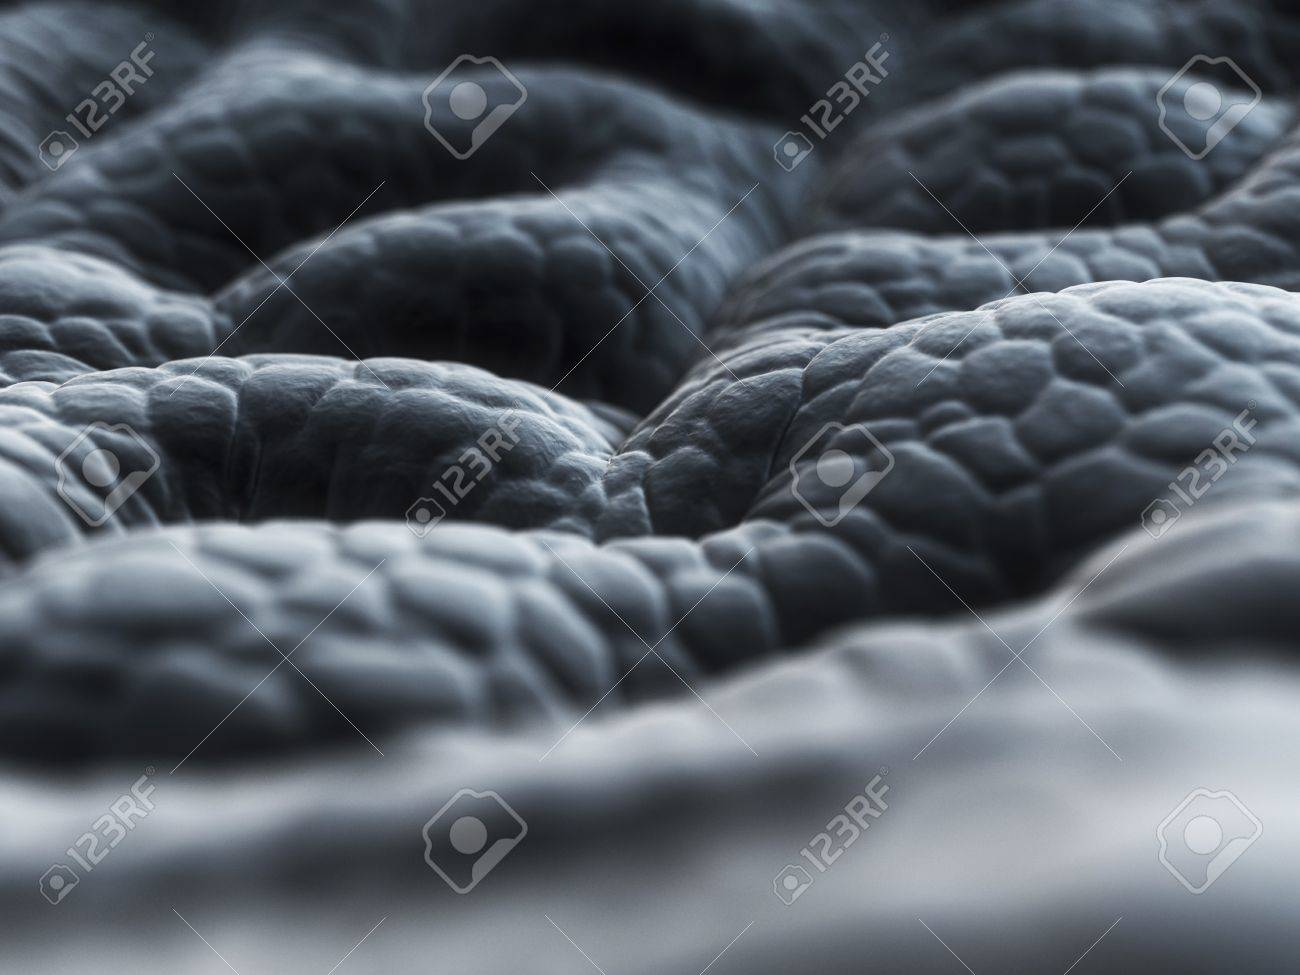 Stomach Liningartwork Stock Photo Picture And Royalty Free Image